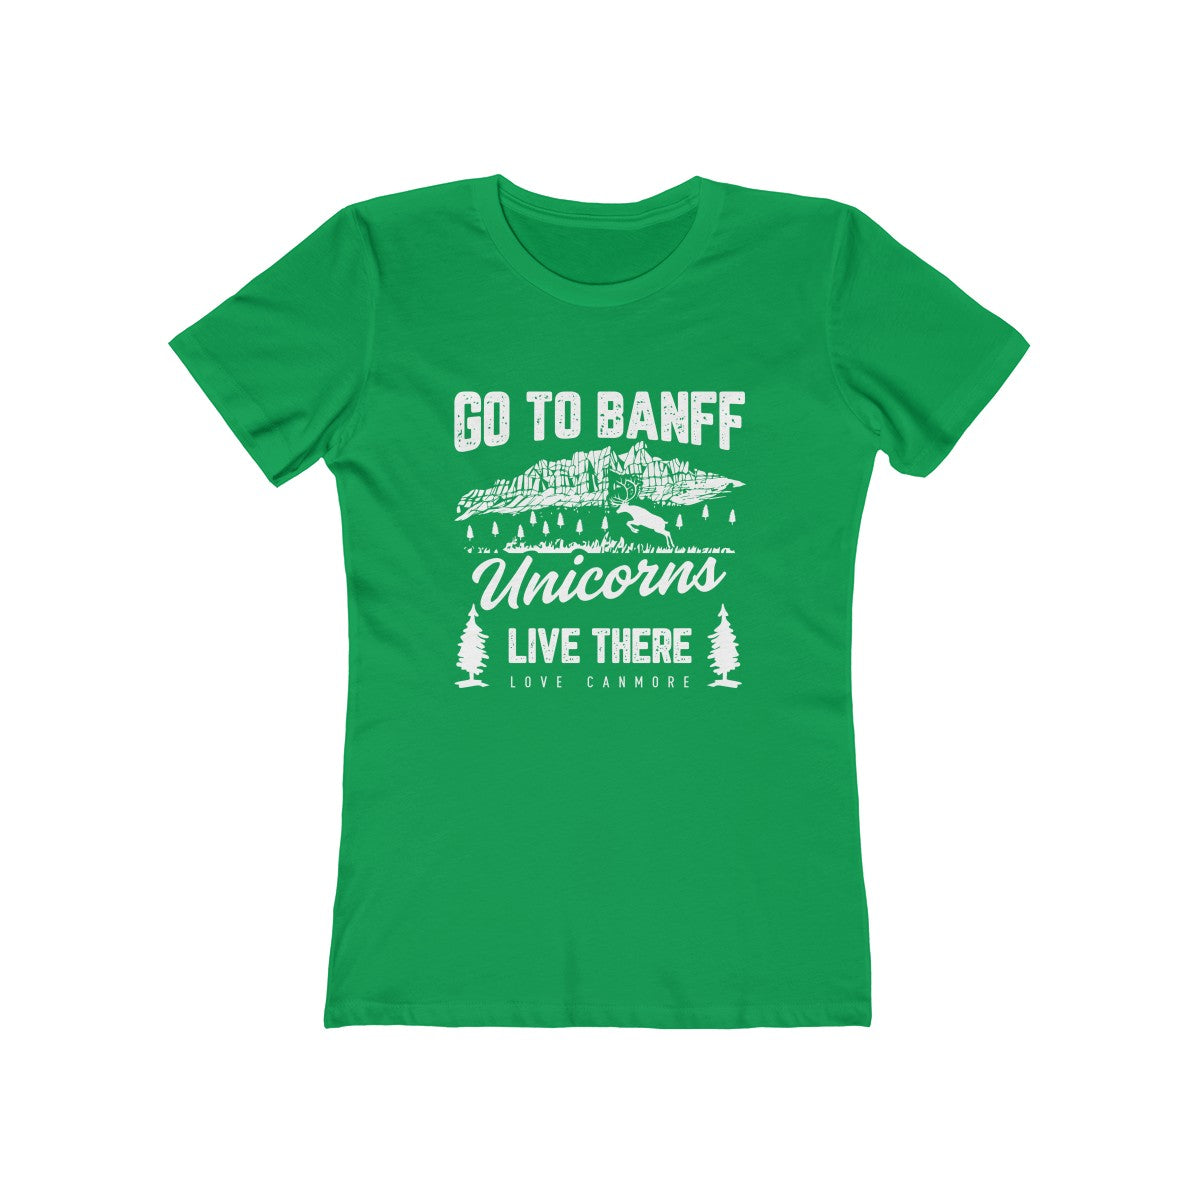 Women's GO TO BANFF UNICORNS LIVE THERE Tee